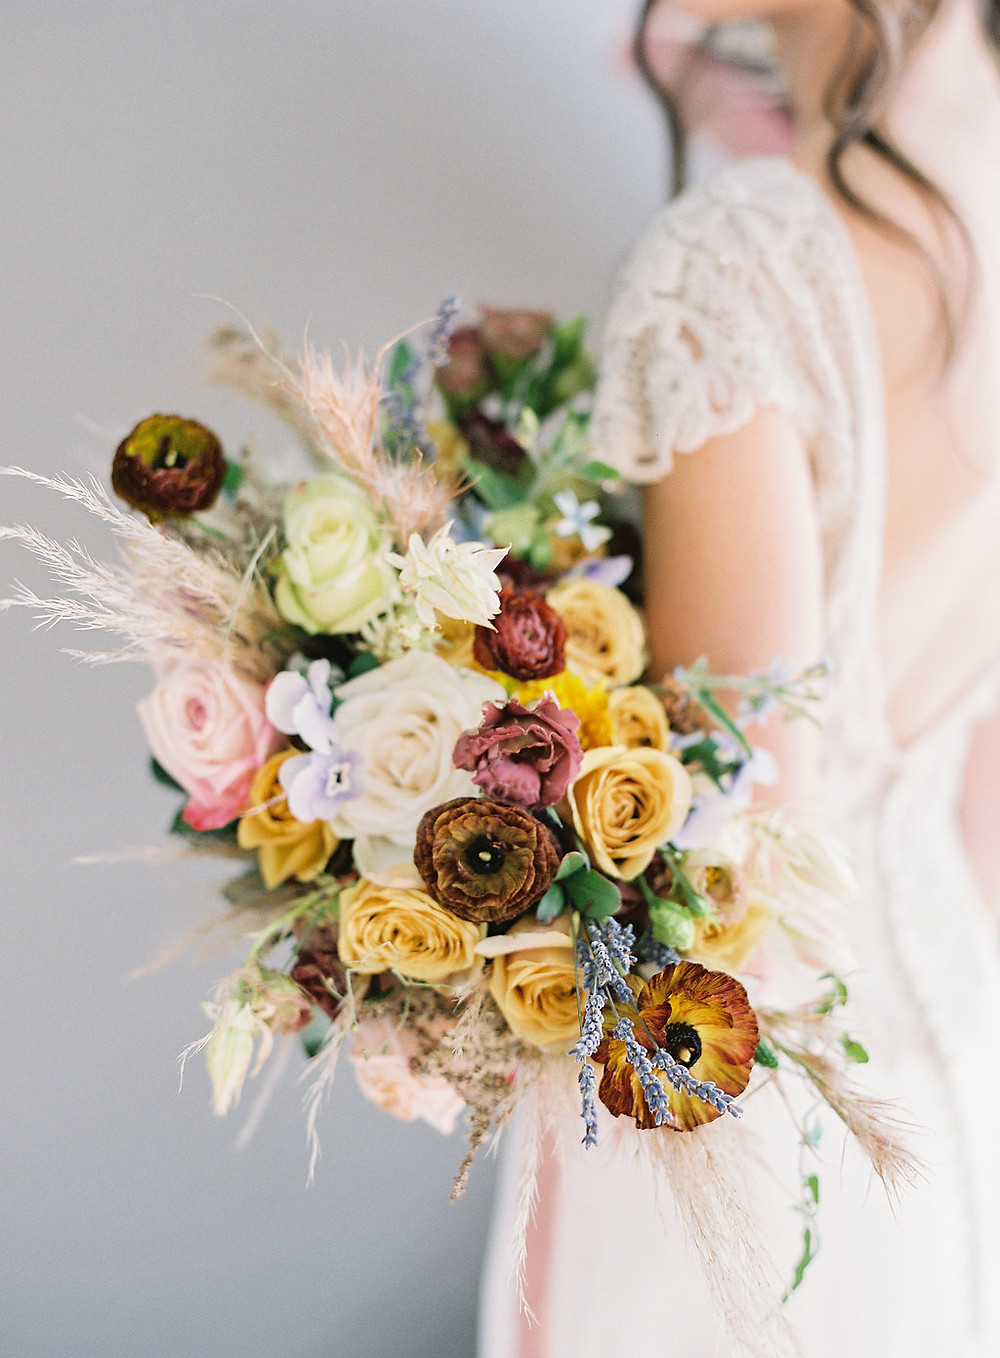 Modern, Bohemian Wedding Bridal Bouquet - Floral Inspiration